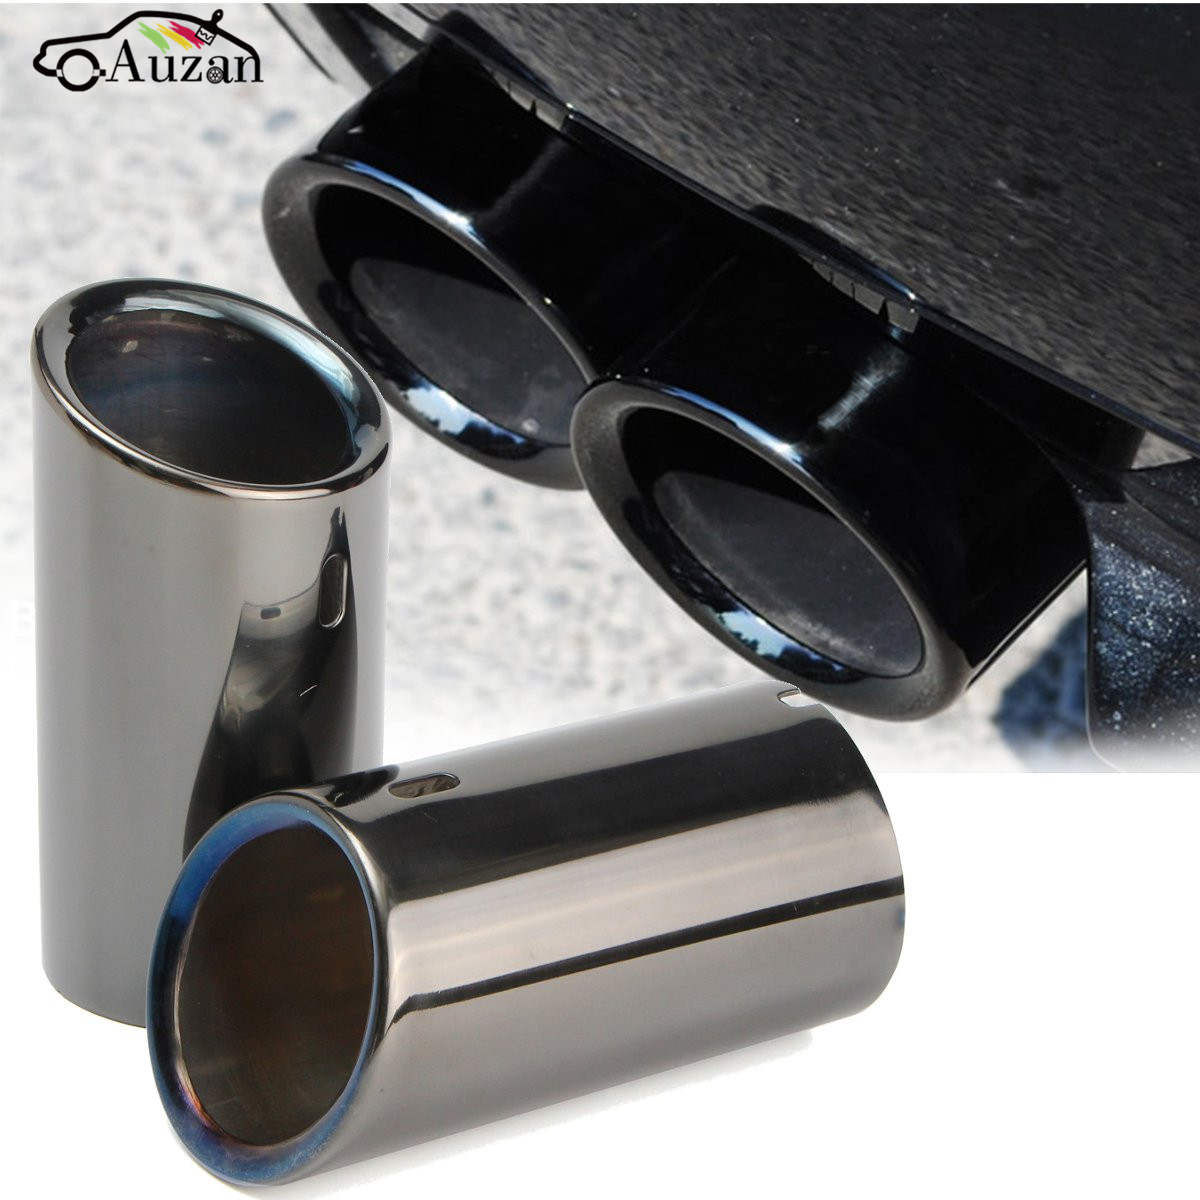 2006-2010 For BMW 3 Series E90 E92 325 Muffler Exhaust Tail Pipe Tip Cover Steel